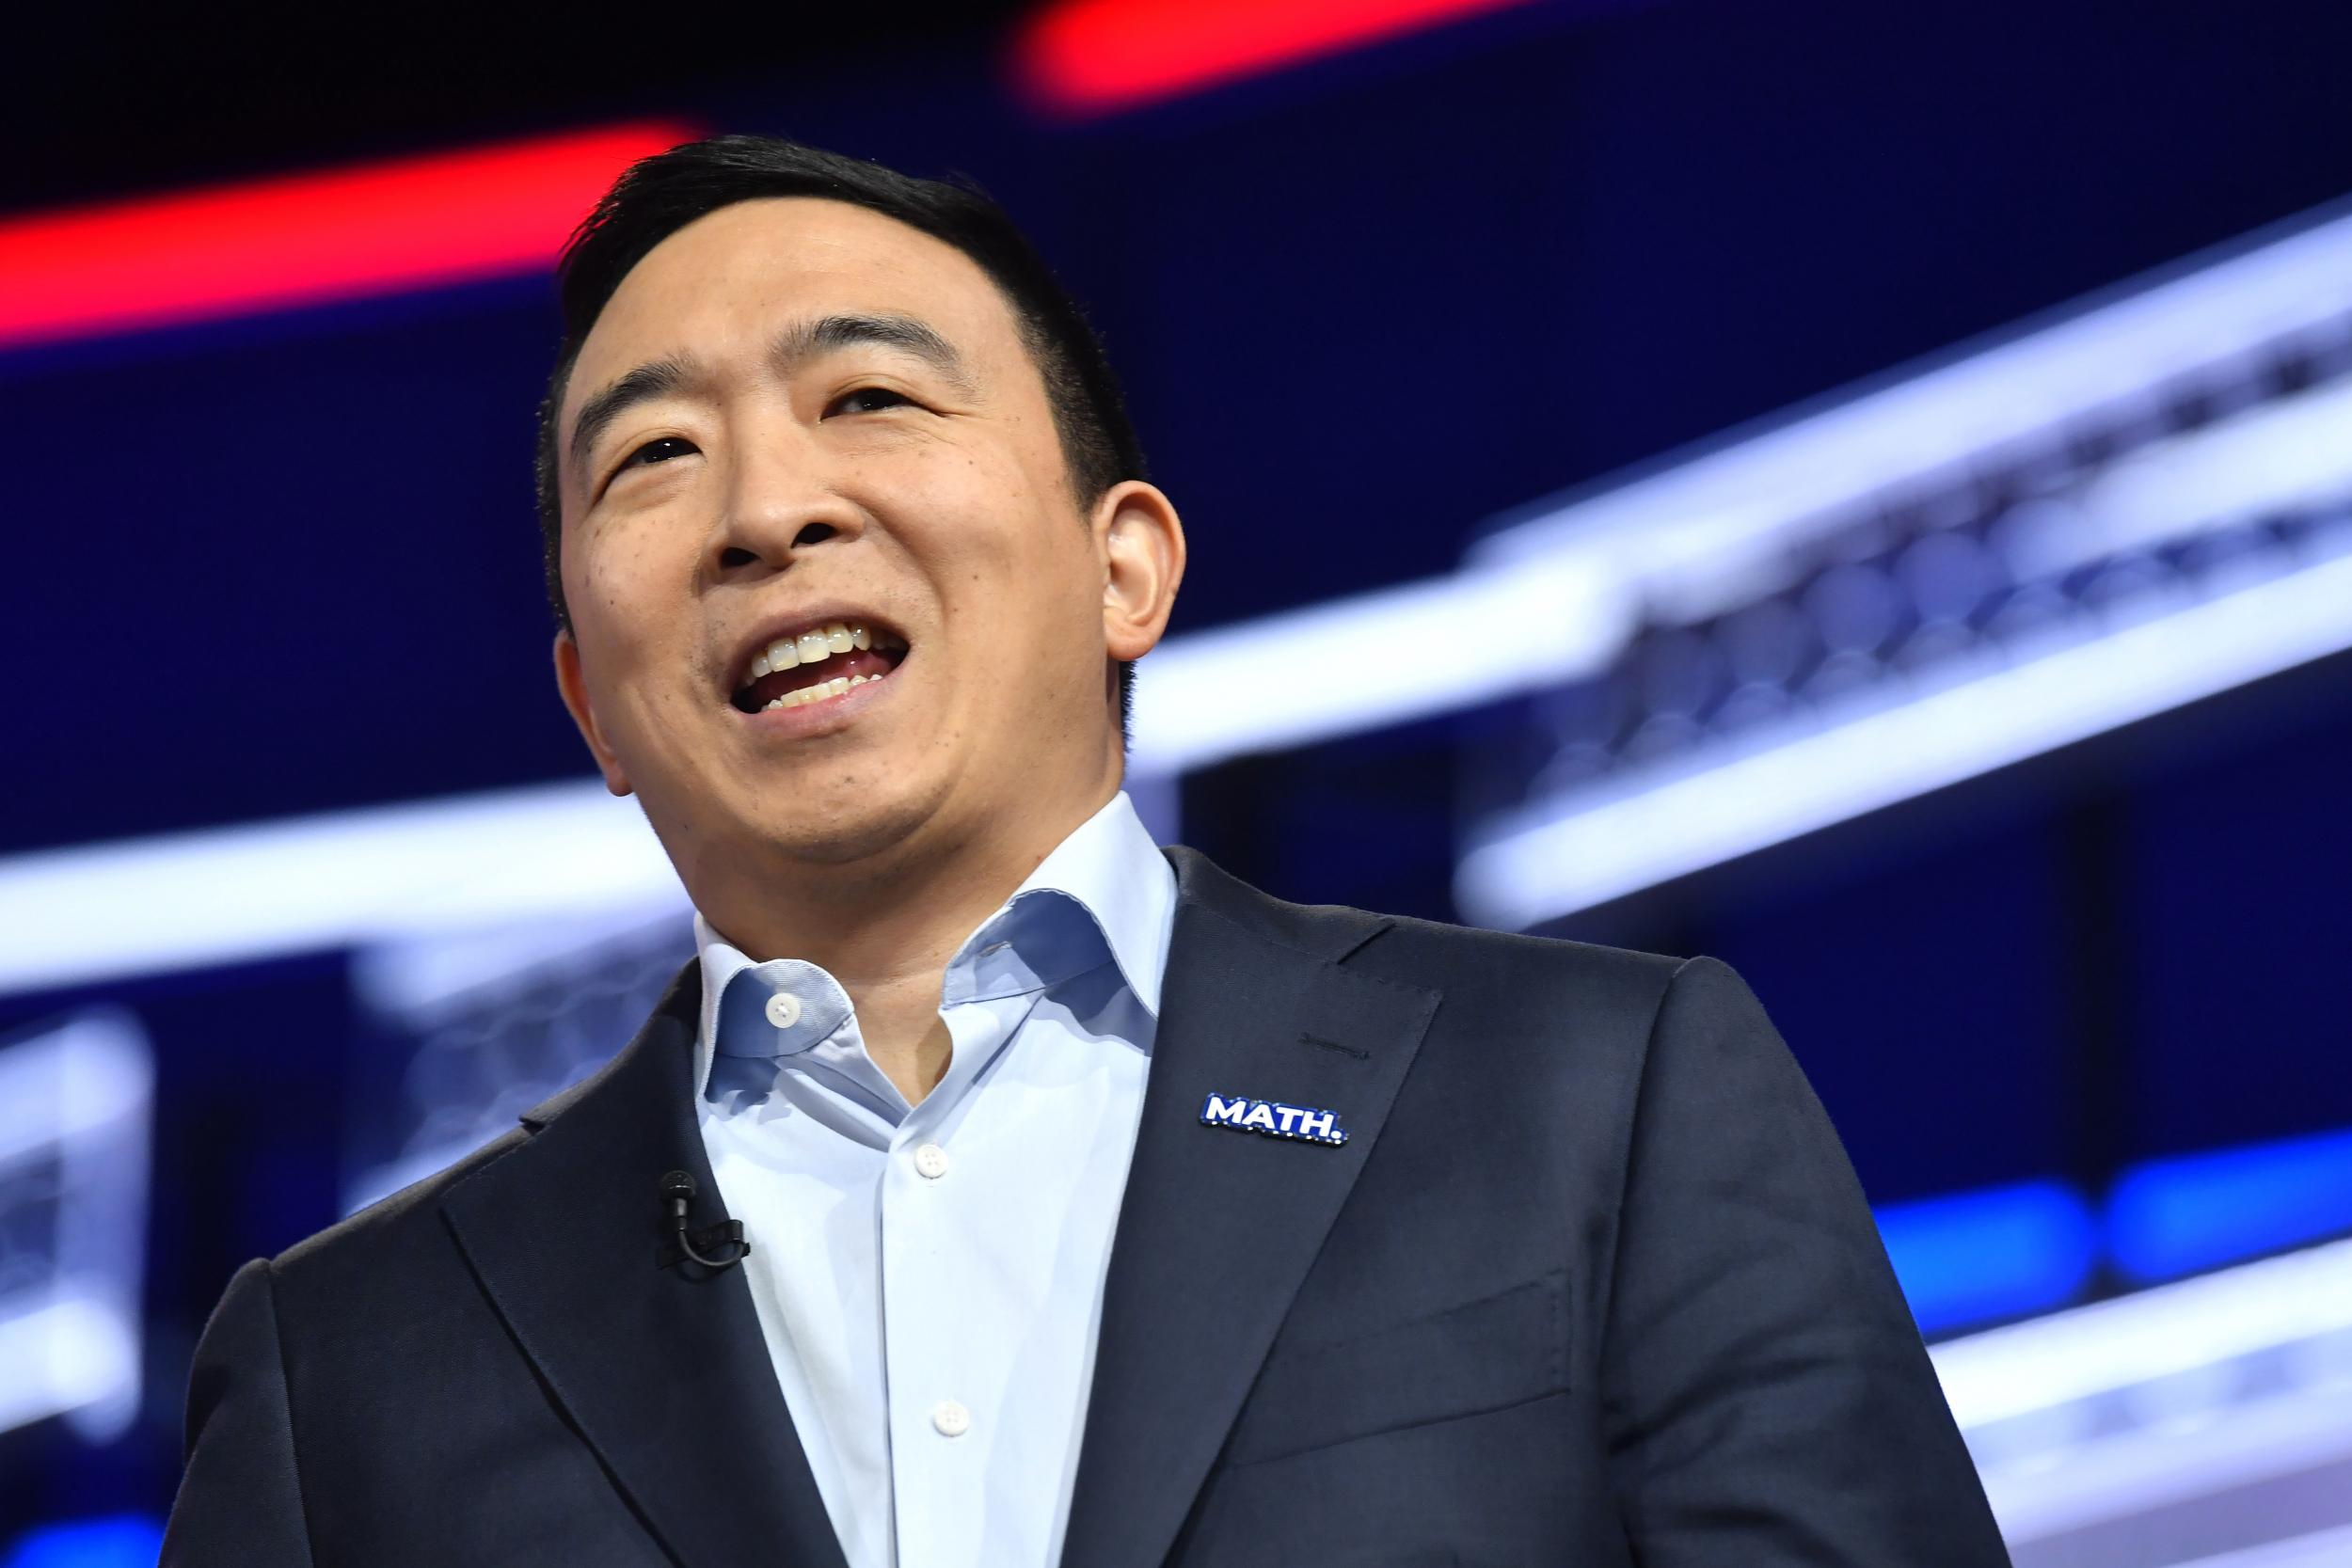 Bloomberg offered running mate spot to Andrew Yang, report claims - independent